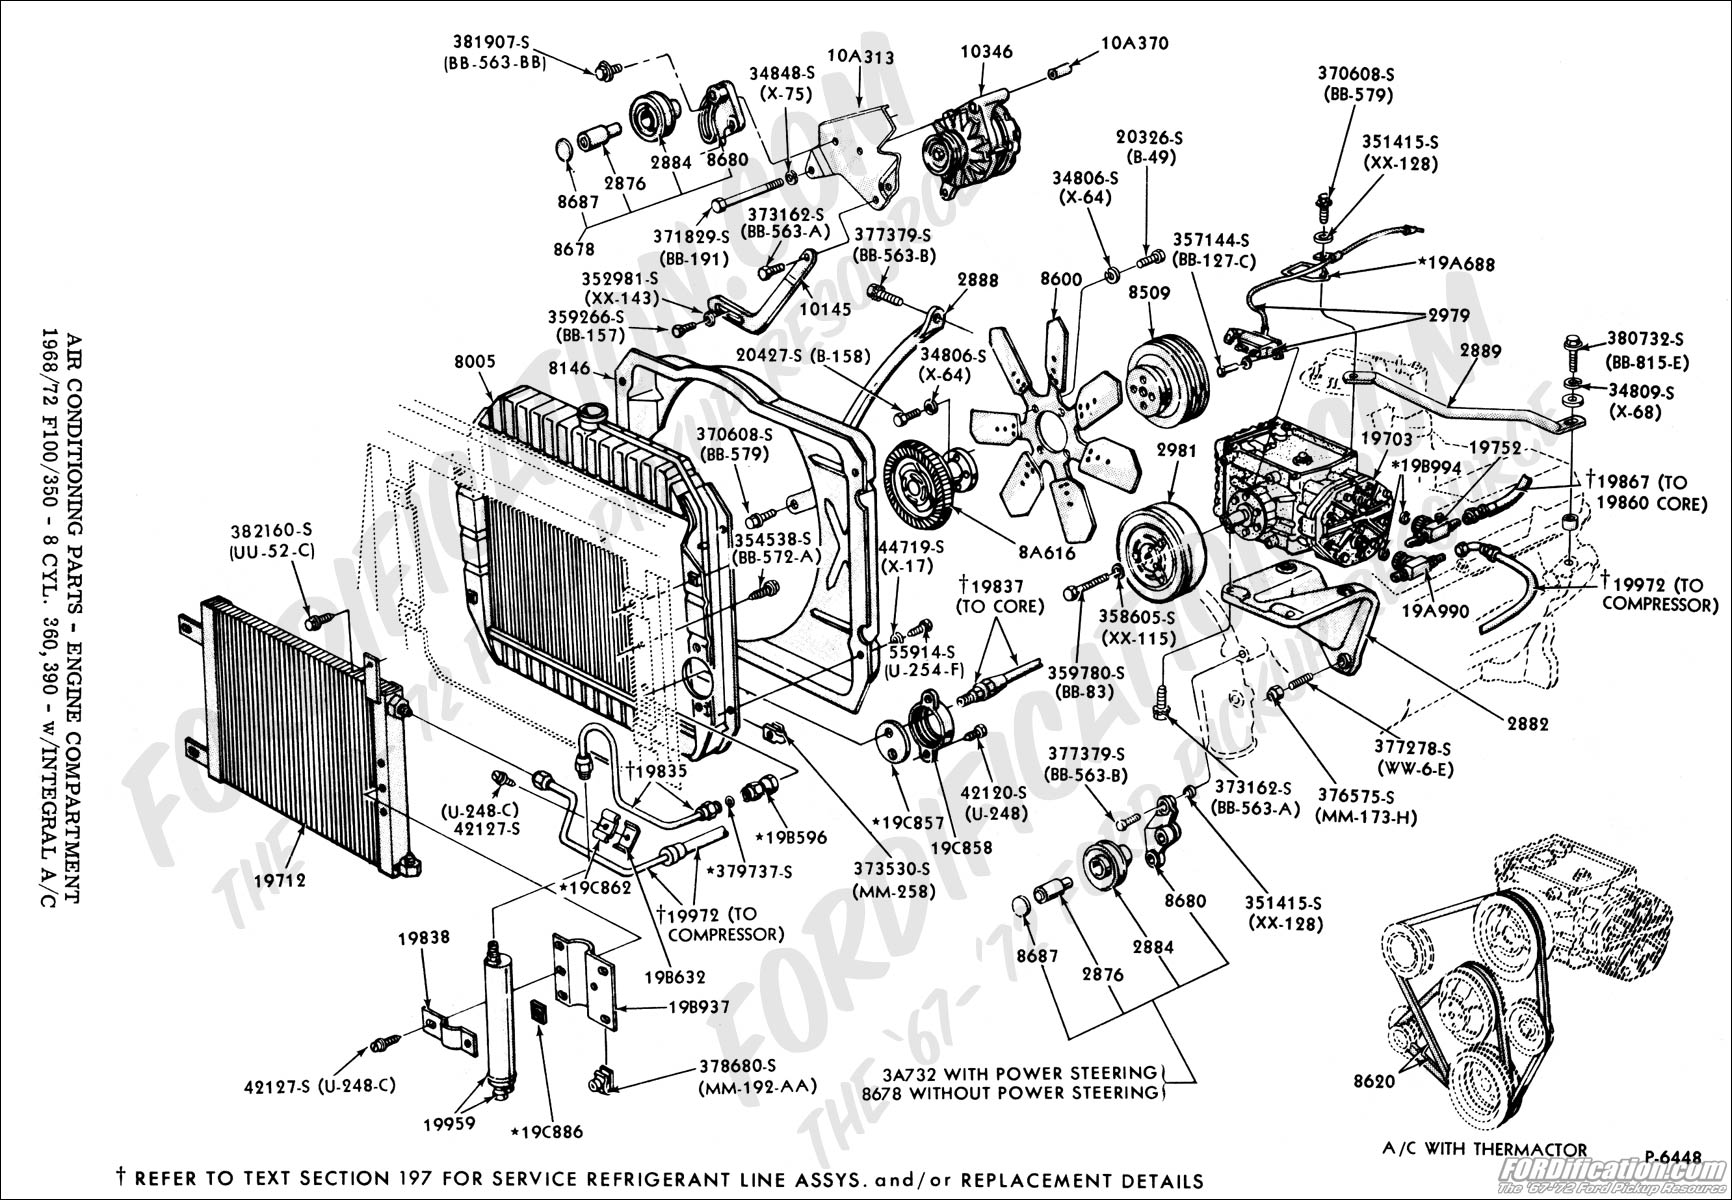 Ford Galaxie Dash Wiring Diagram Auto moreover Ac Eng p Integral moreover Turn Signal Wiring Diagram together with Schematics h likewise Viewtopic. on ford f100 steering box